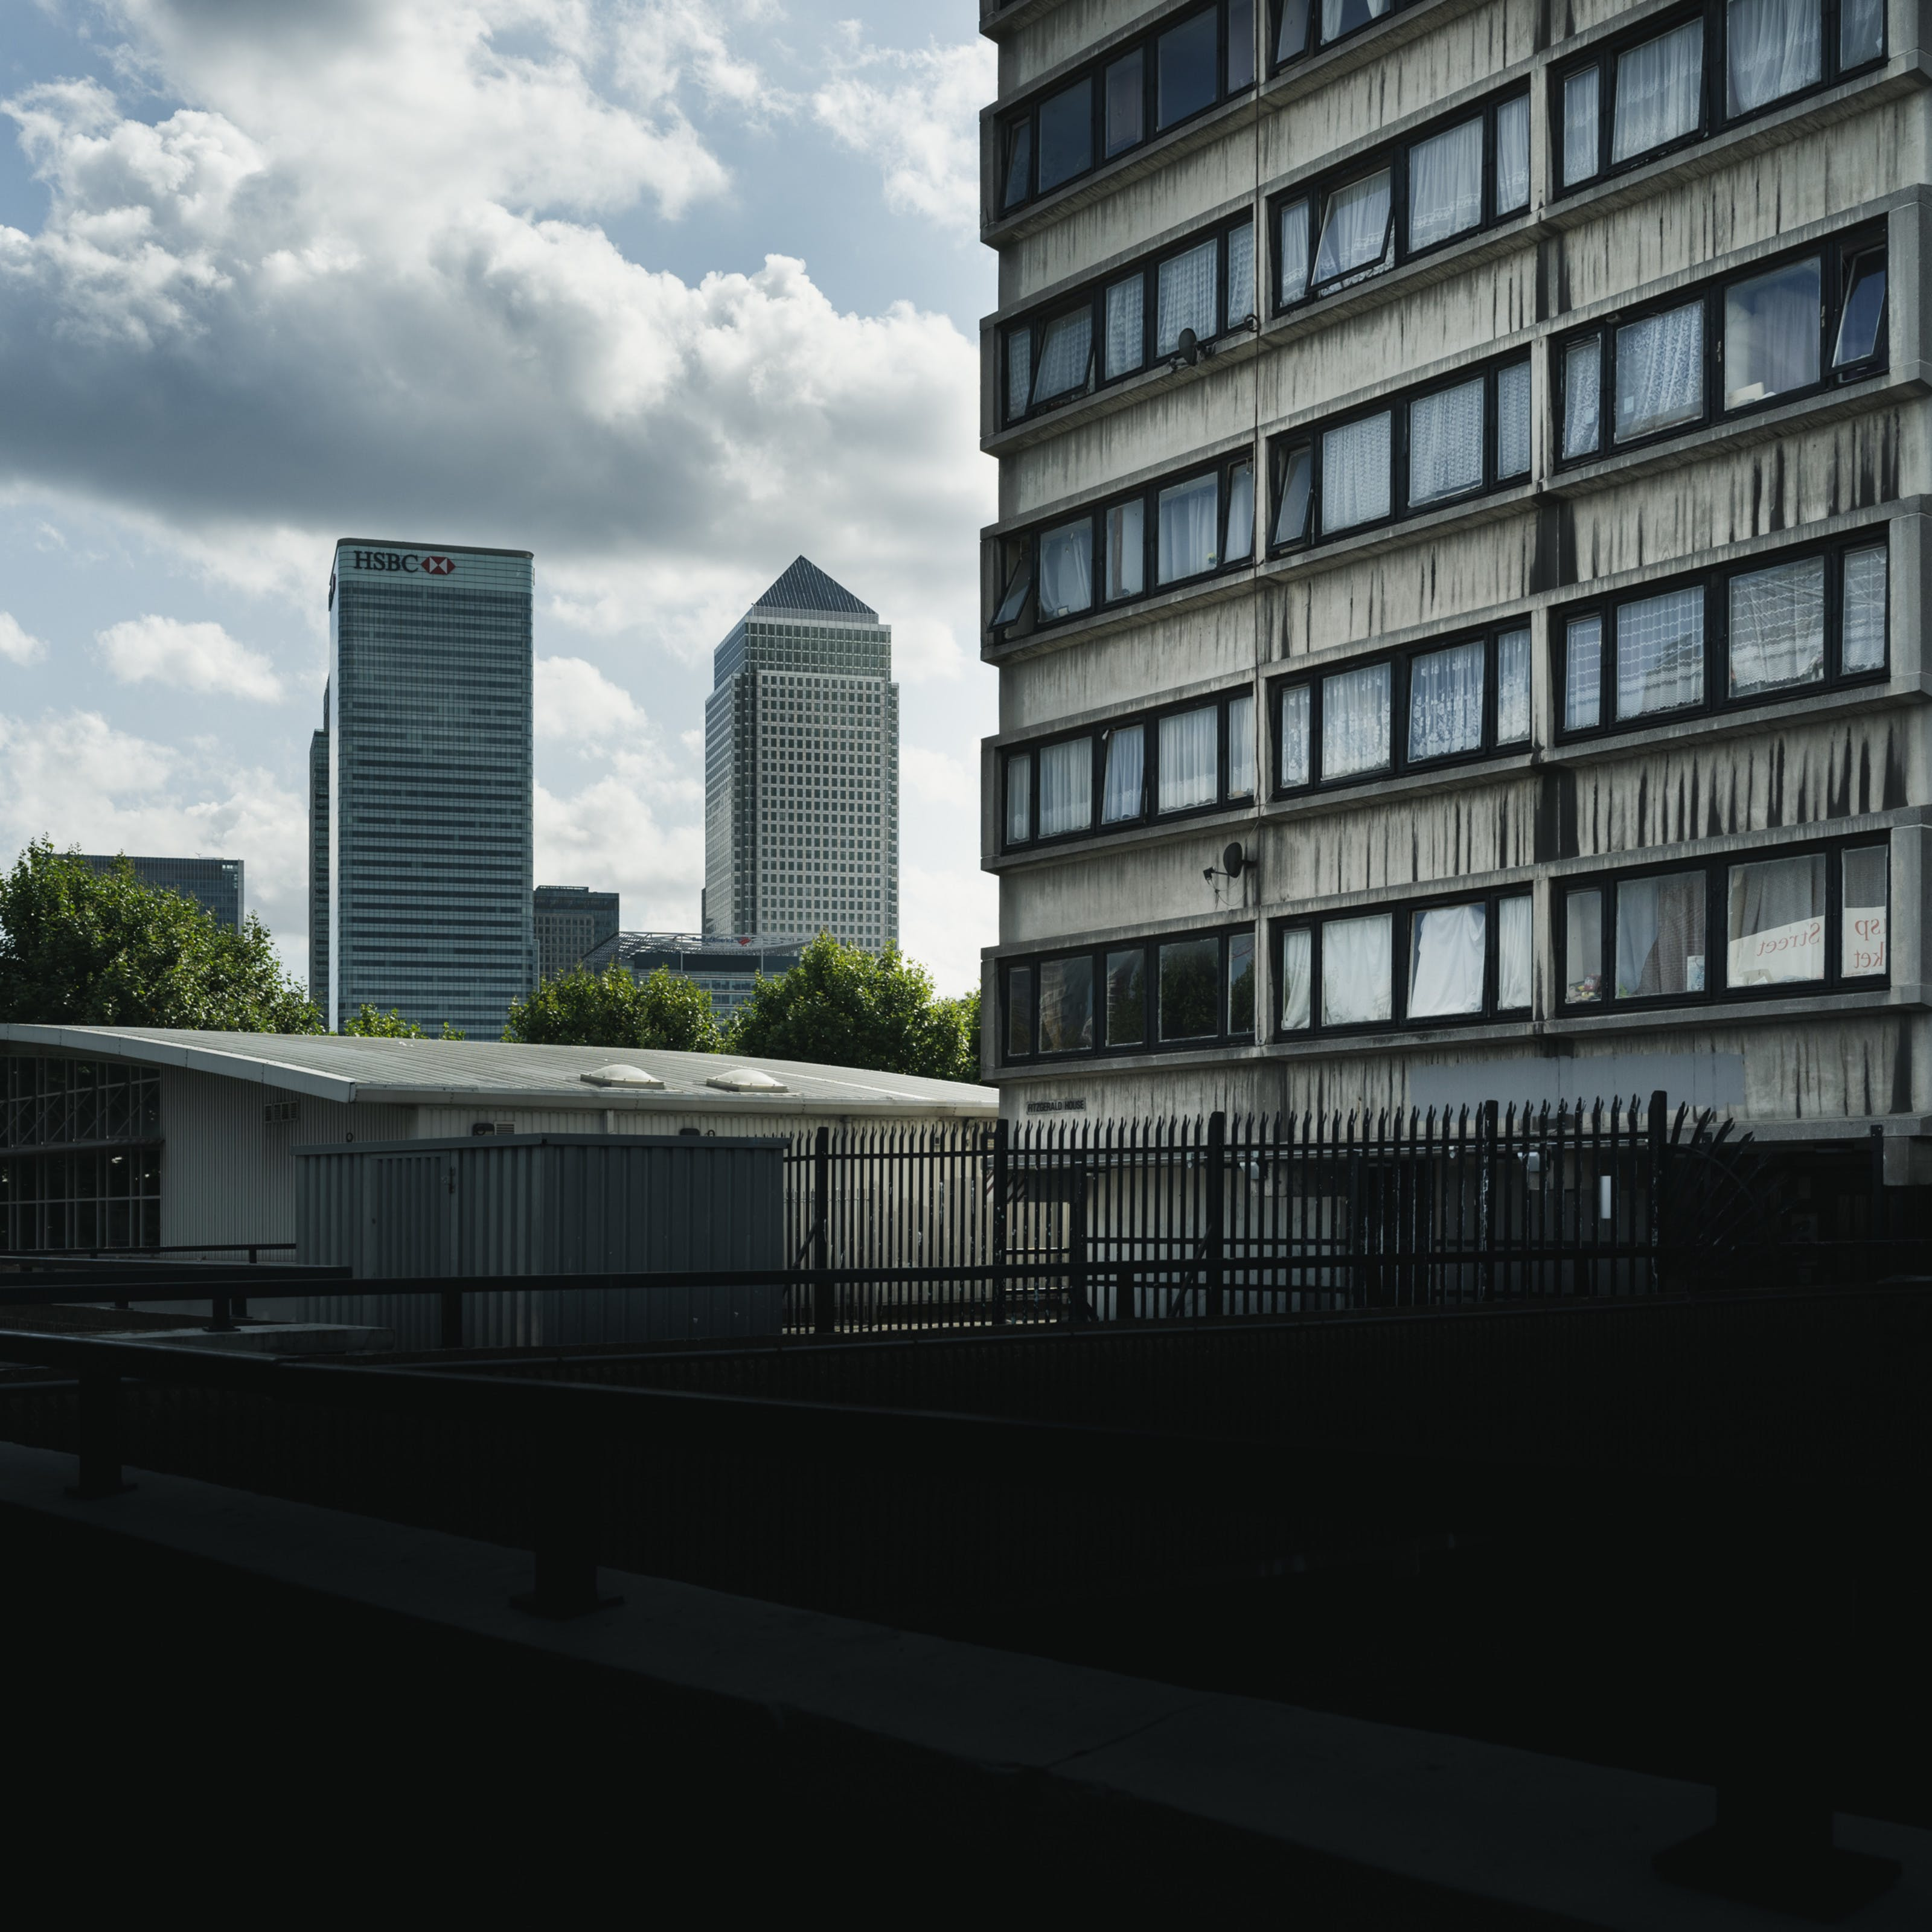 Photograph of a view towards Canary Wharf with a section of a council high rise block of flats in the foreground.